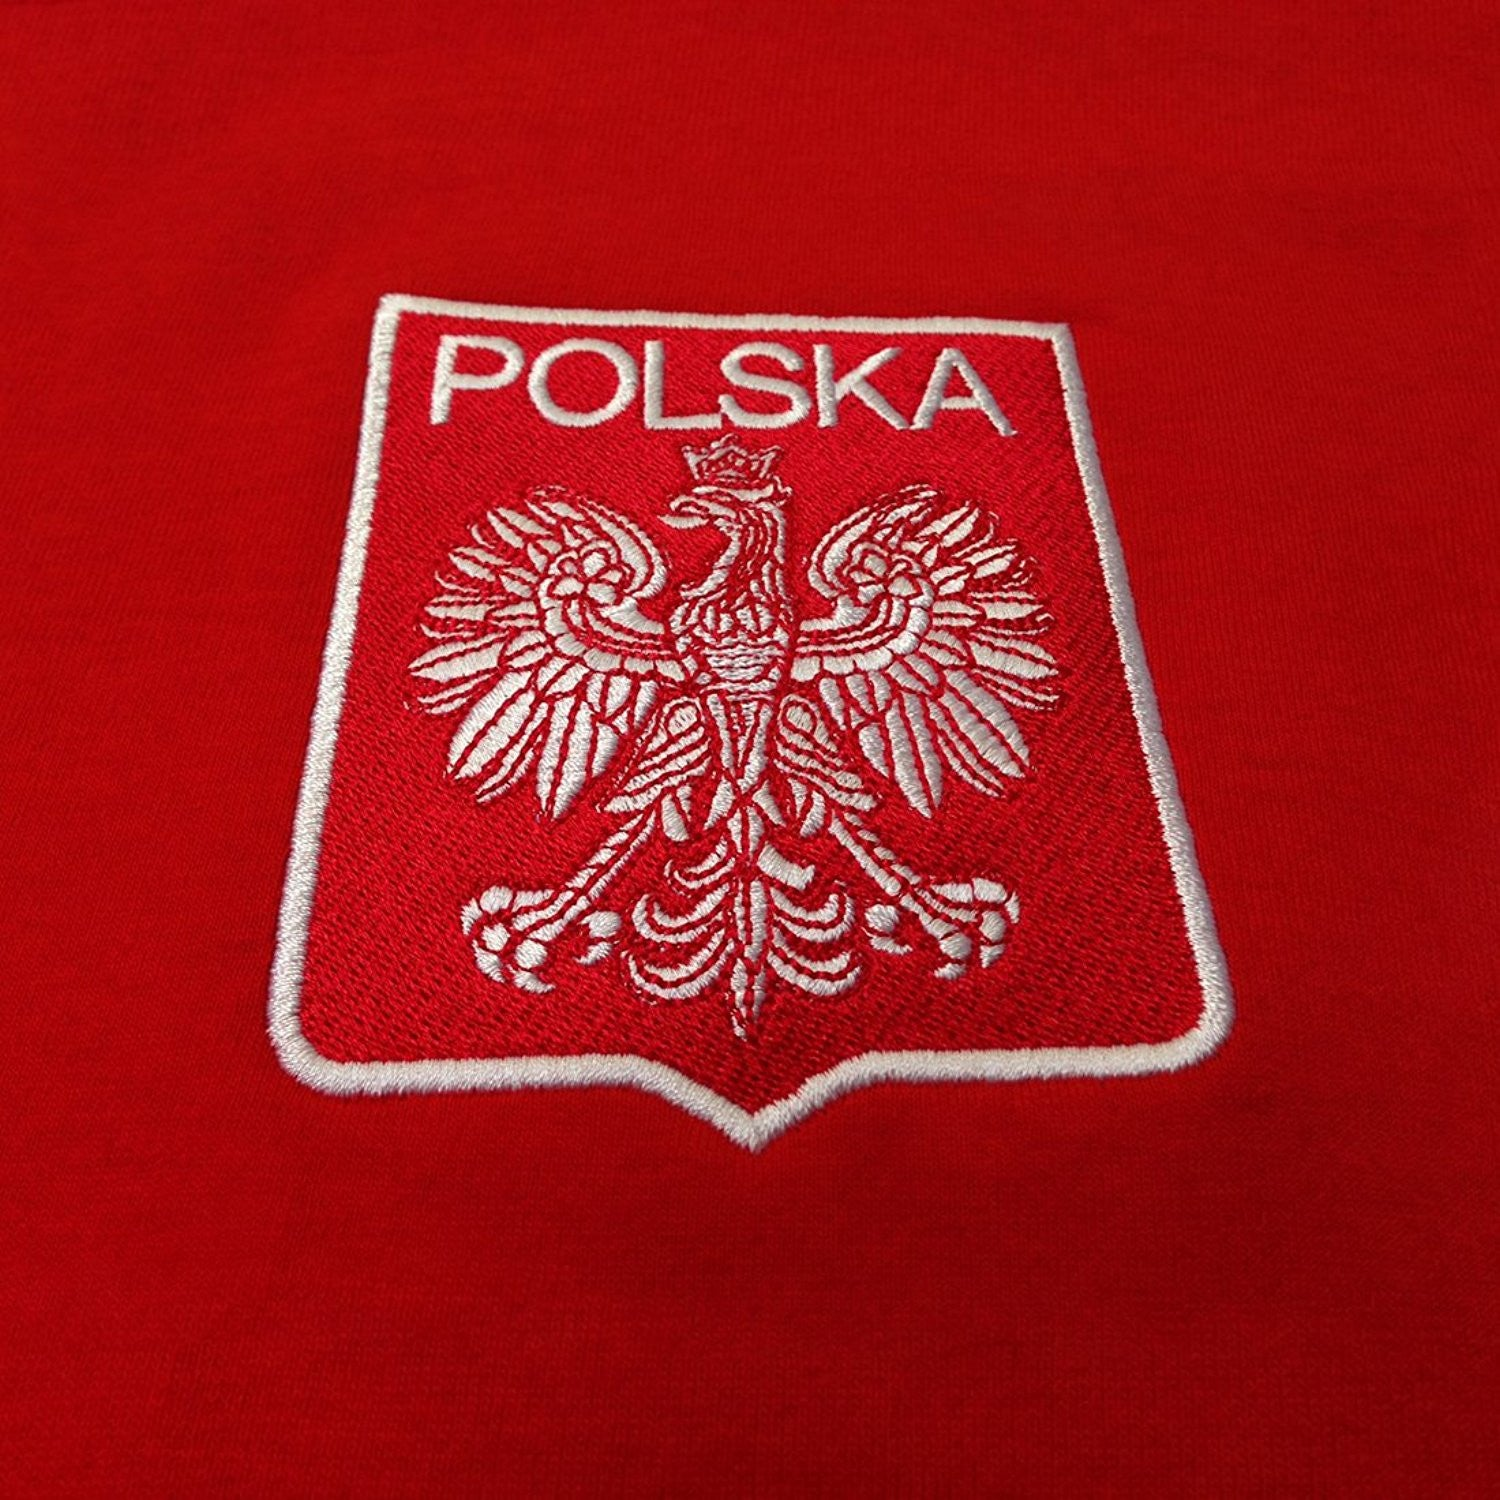 Adults Poland Polska Lewandowski Embroidered Retro Football T-Shirt with Free Personalisation - Red / White 7a4e0CUP